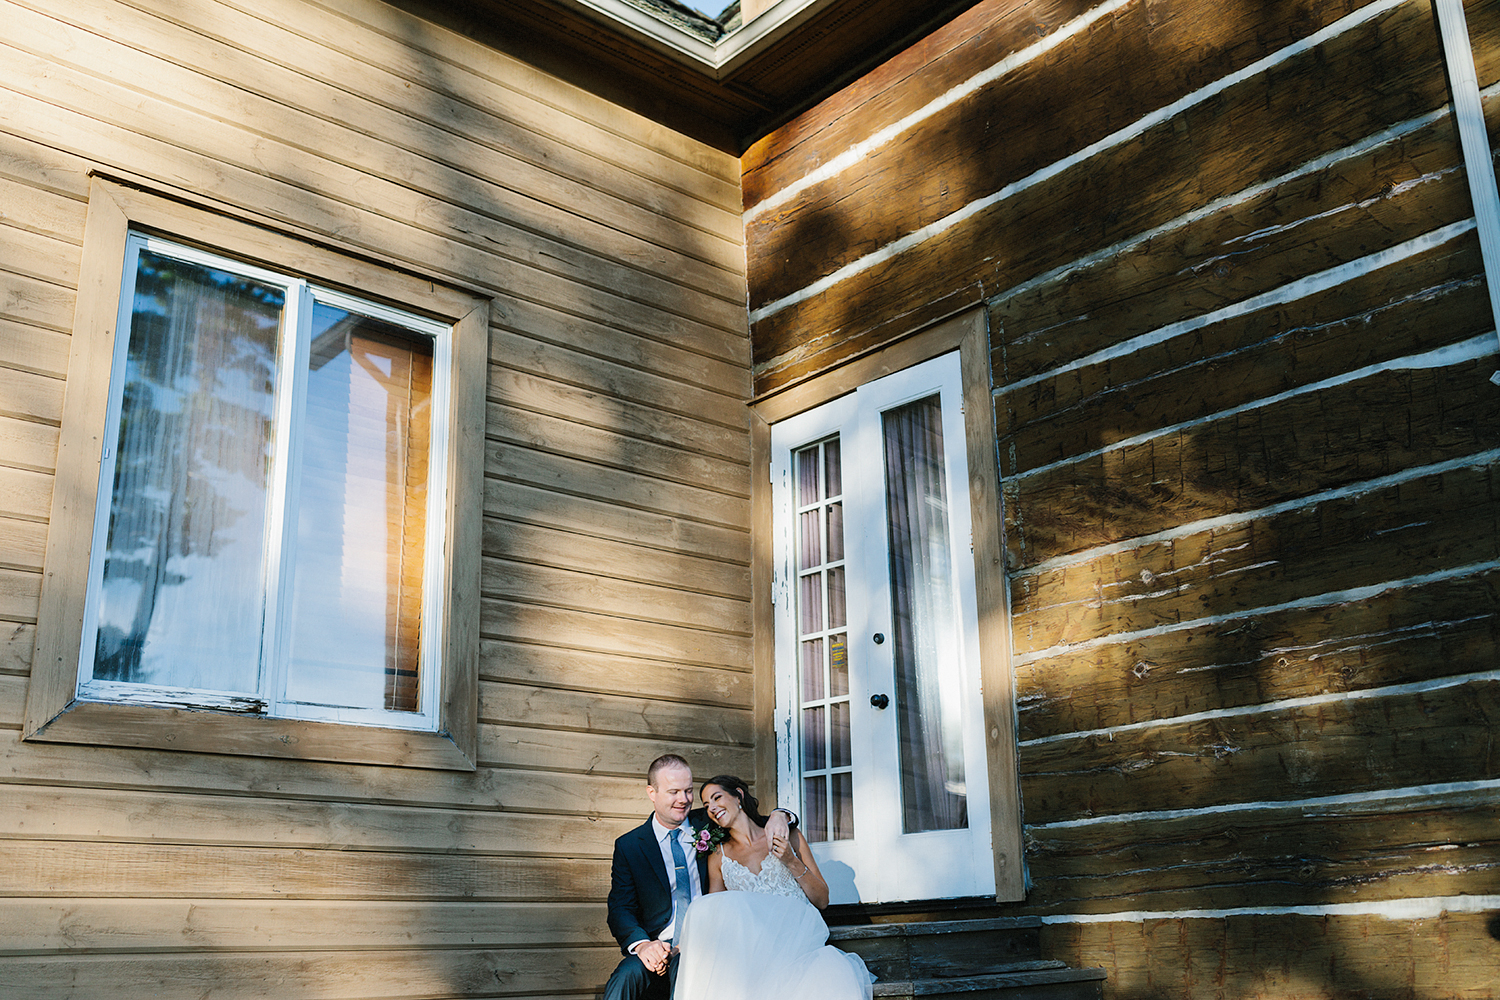 golden-hour-portraits-with-bride-and-groom-in-cottage-At-Eganridge-Resort-Venue-Muskoka-Ontario-Wedding-Photography-by-Ryanne-Hollies-Photography-Toronto-Documentary-Wedding-Photographer.jpg